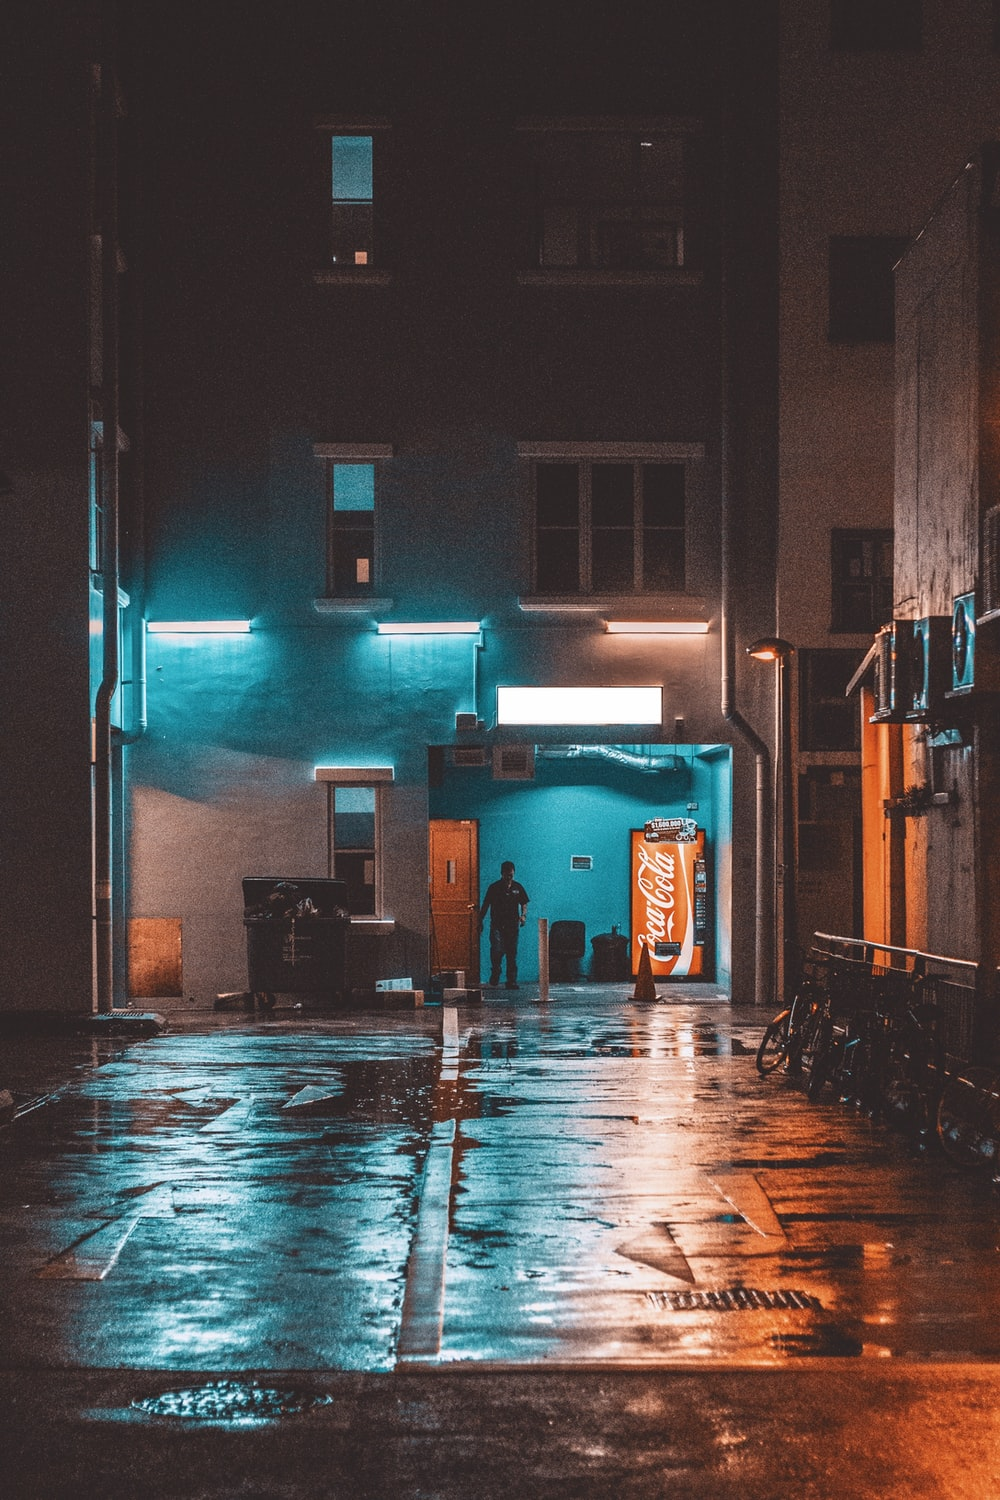 man standing in front building during night time